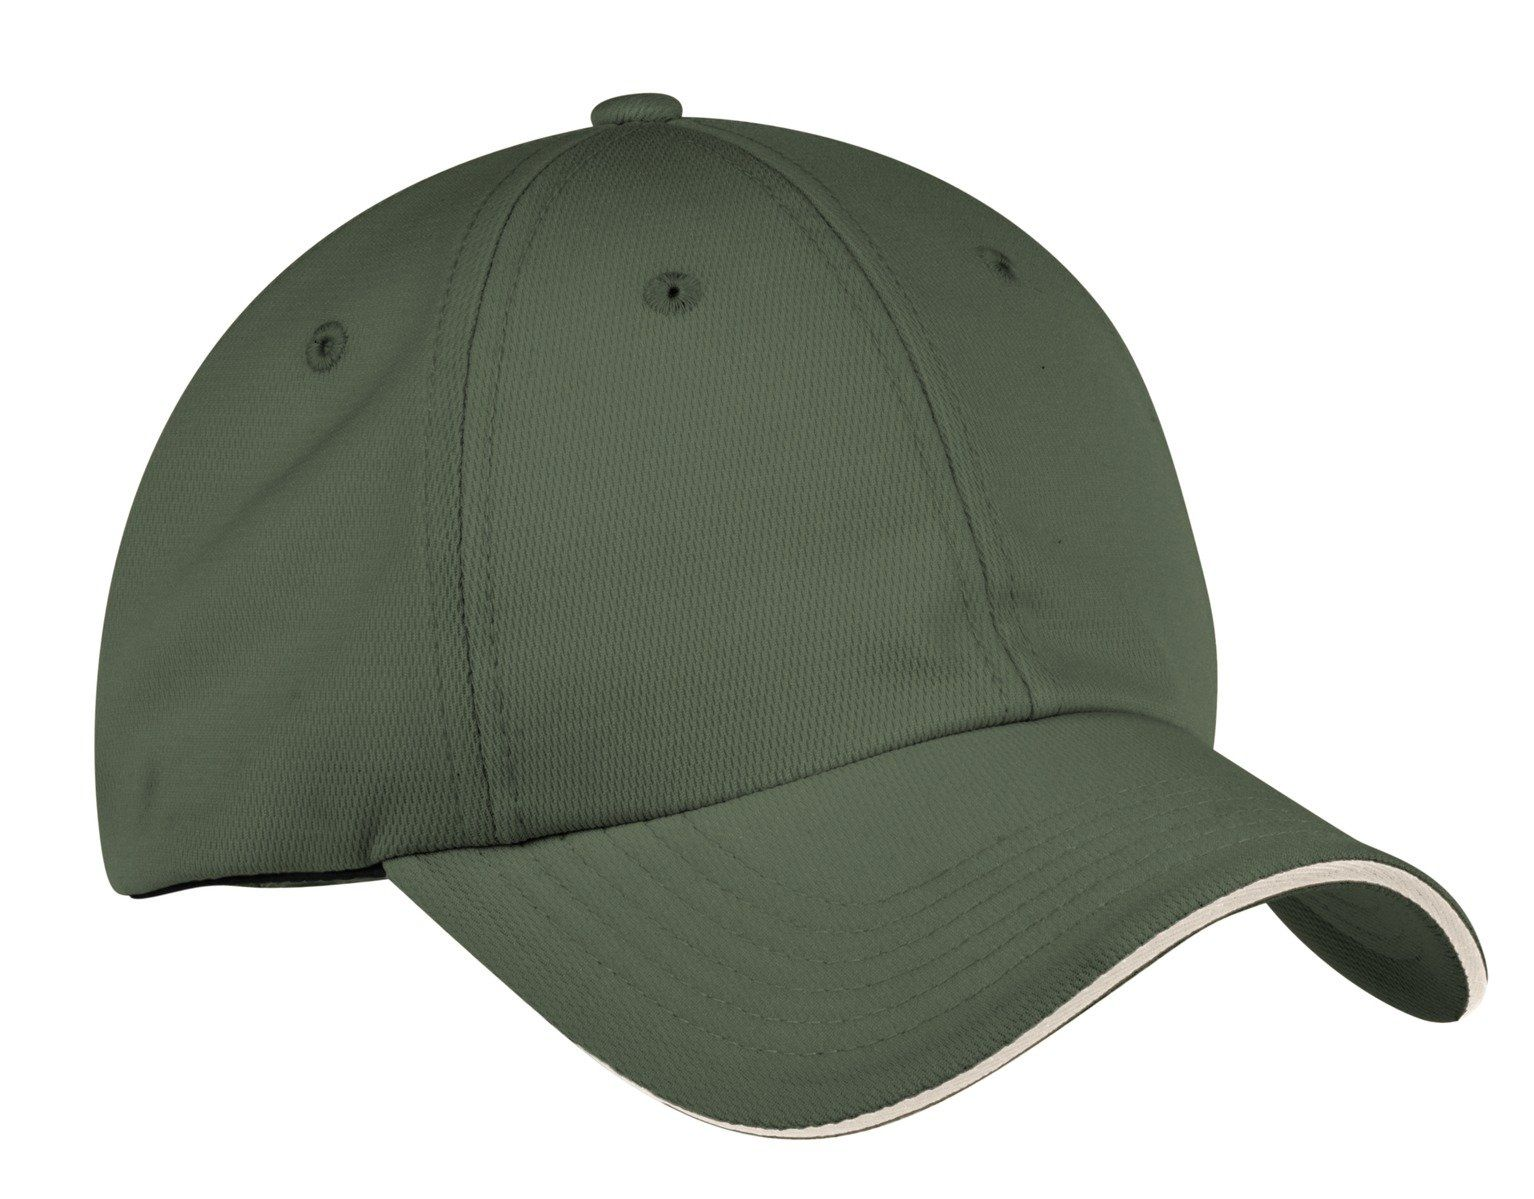 An exceptional combination of breathability and moisture wicking this cap features a quick-drying CoolMax sweatband. The sandwich bill adds character and is a great complement to any logo.Fabric: 55/45 poly/polypropylene double knitStructure: Lightly structuredProfile: LowClosure: Hook and loop